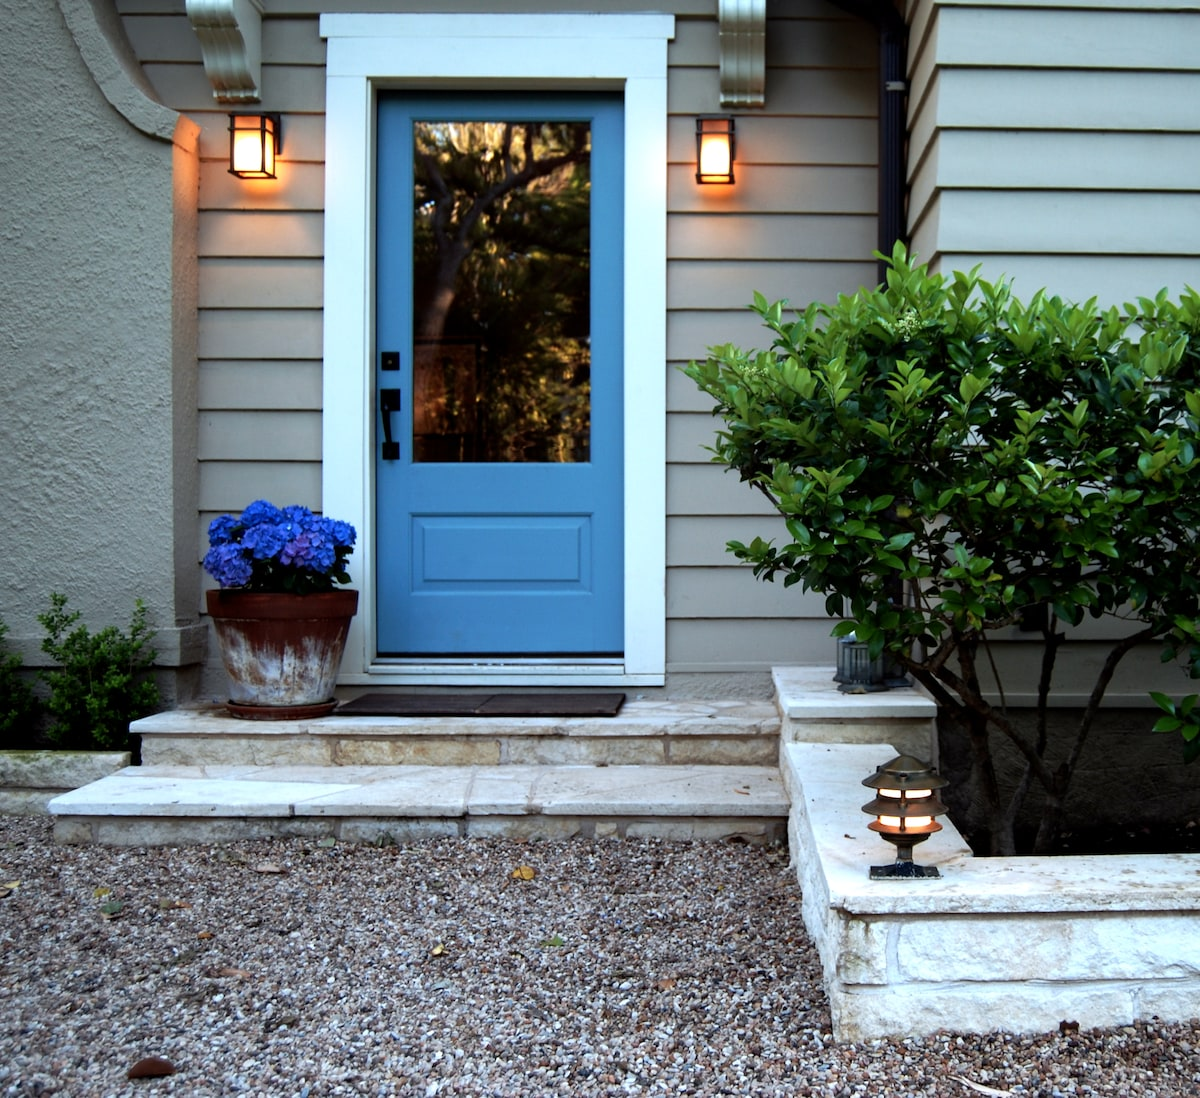 Inviting front entry with addition outdoor seating area (not pictured)